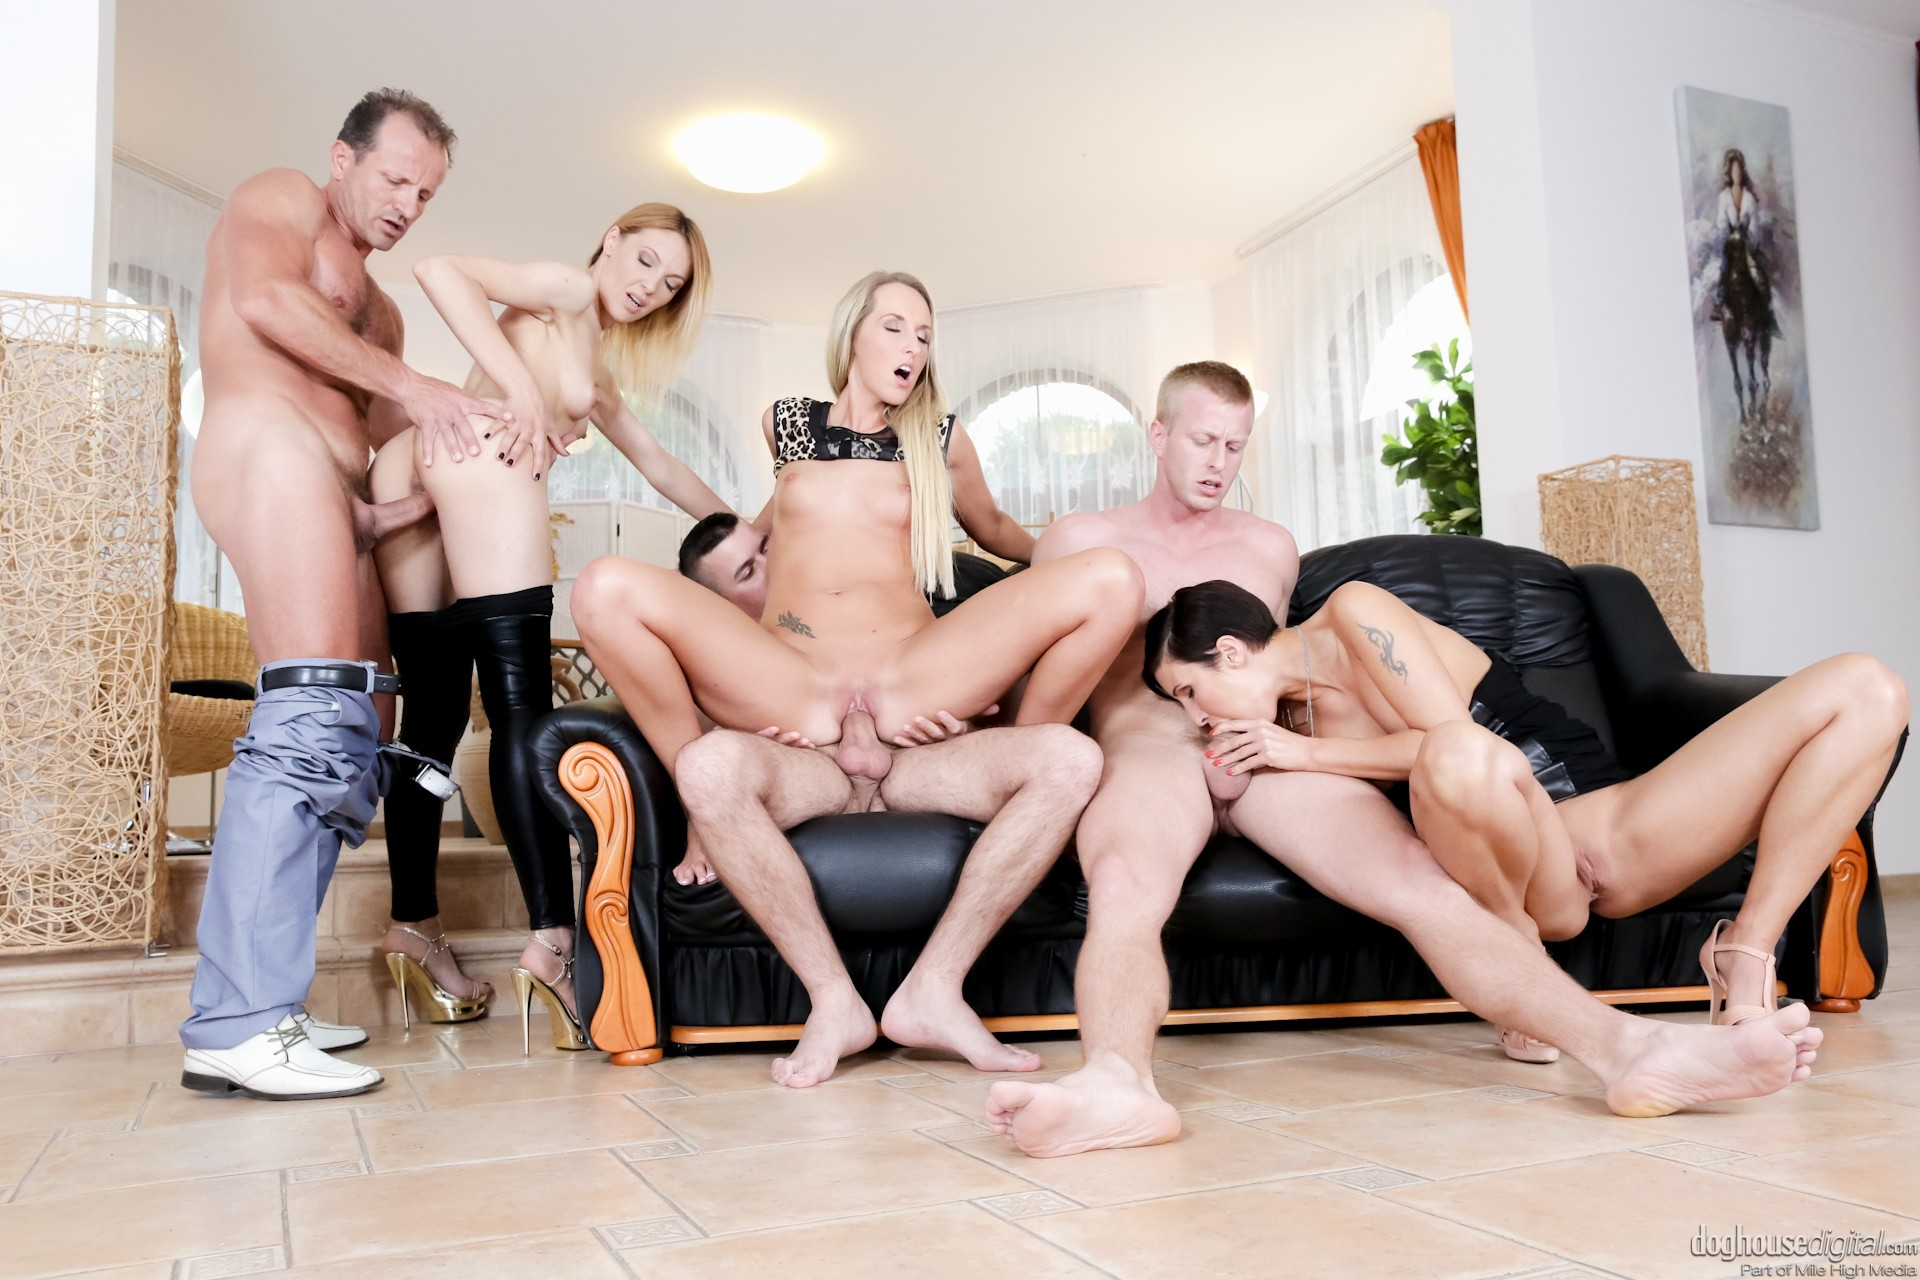 If You Like To See Group Sex Wild Orgies And Sexy